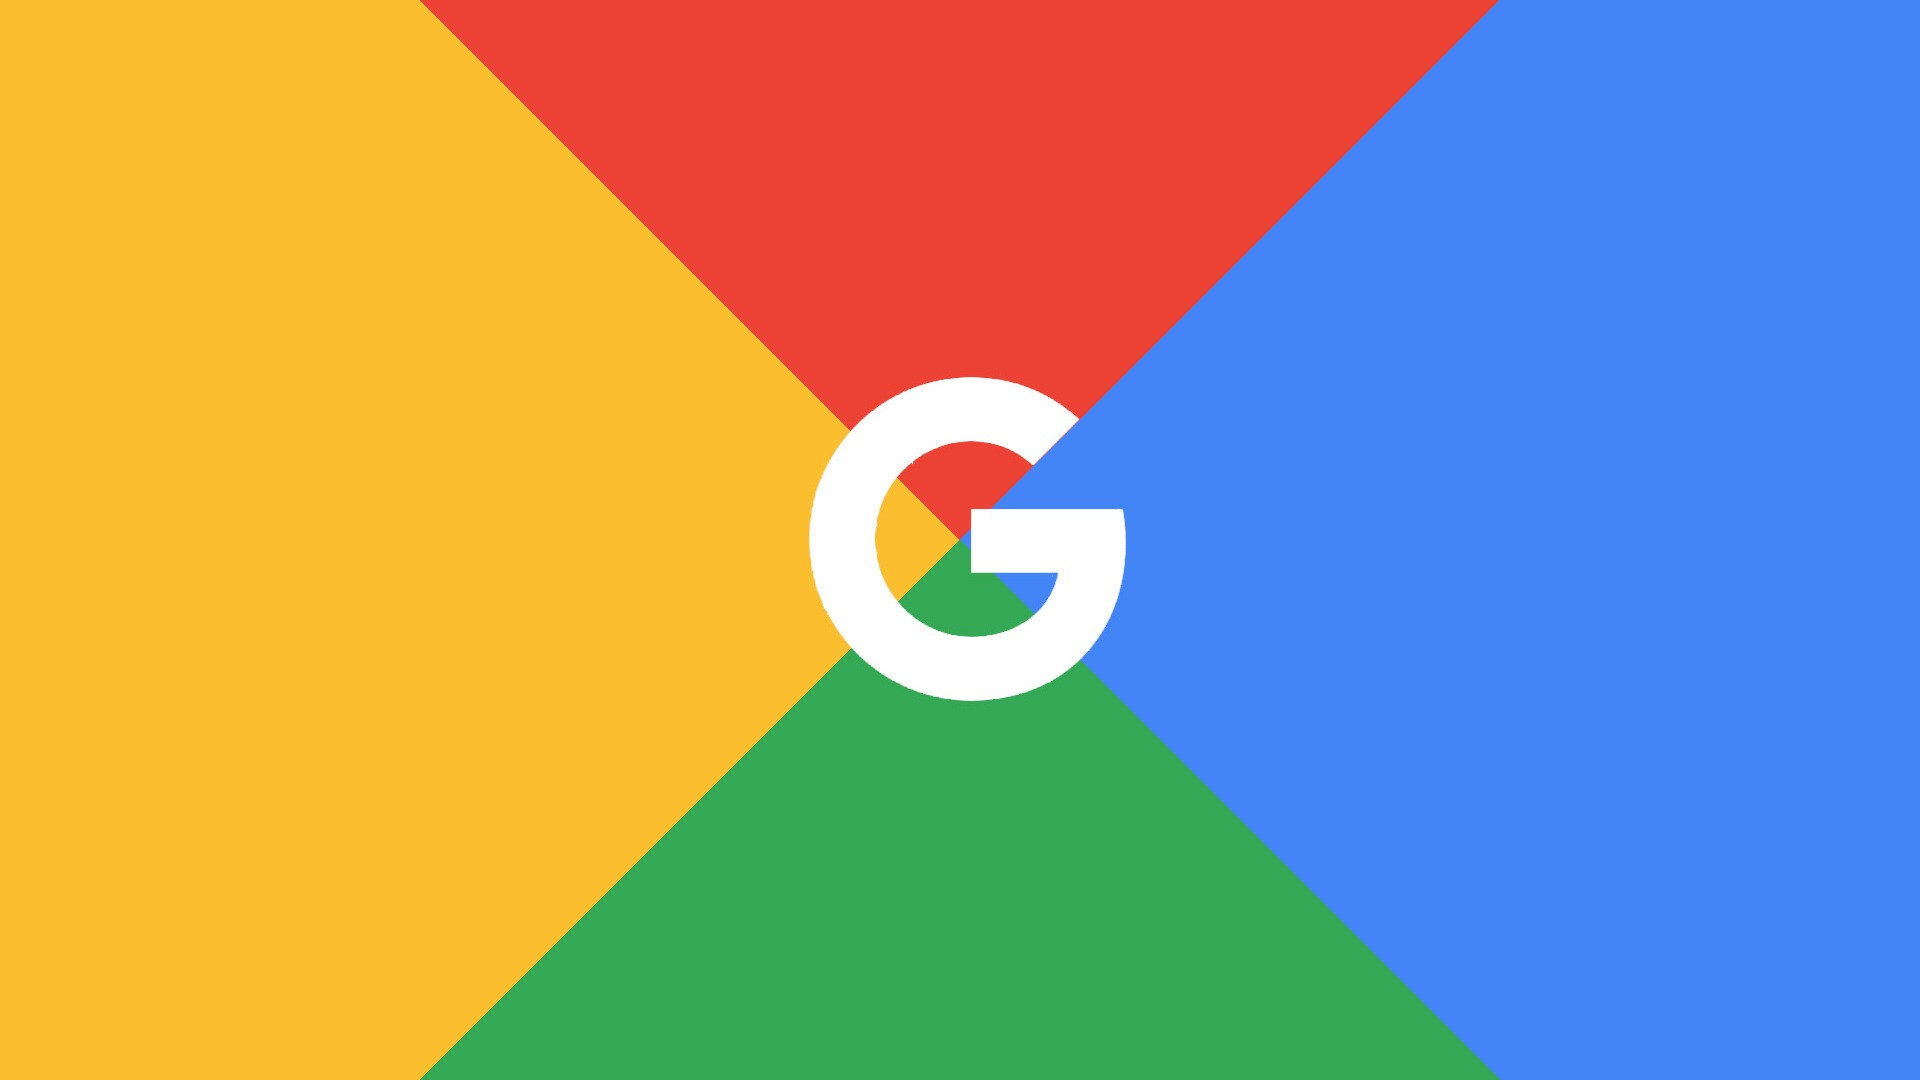 Google Wallpaper